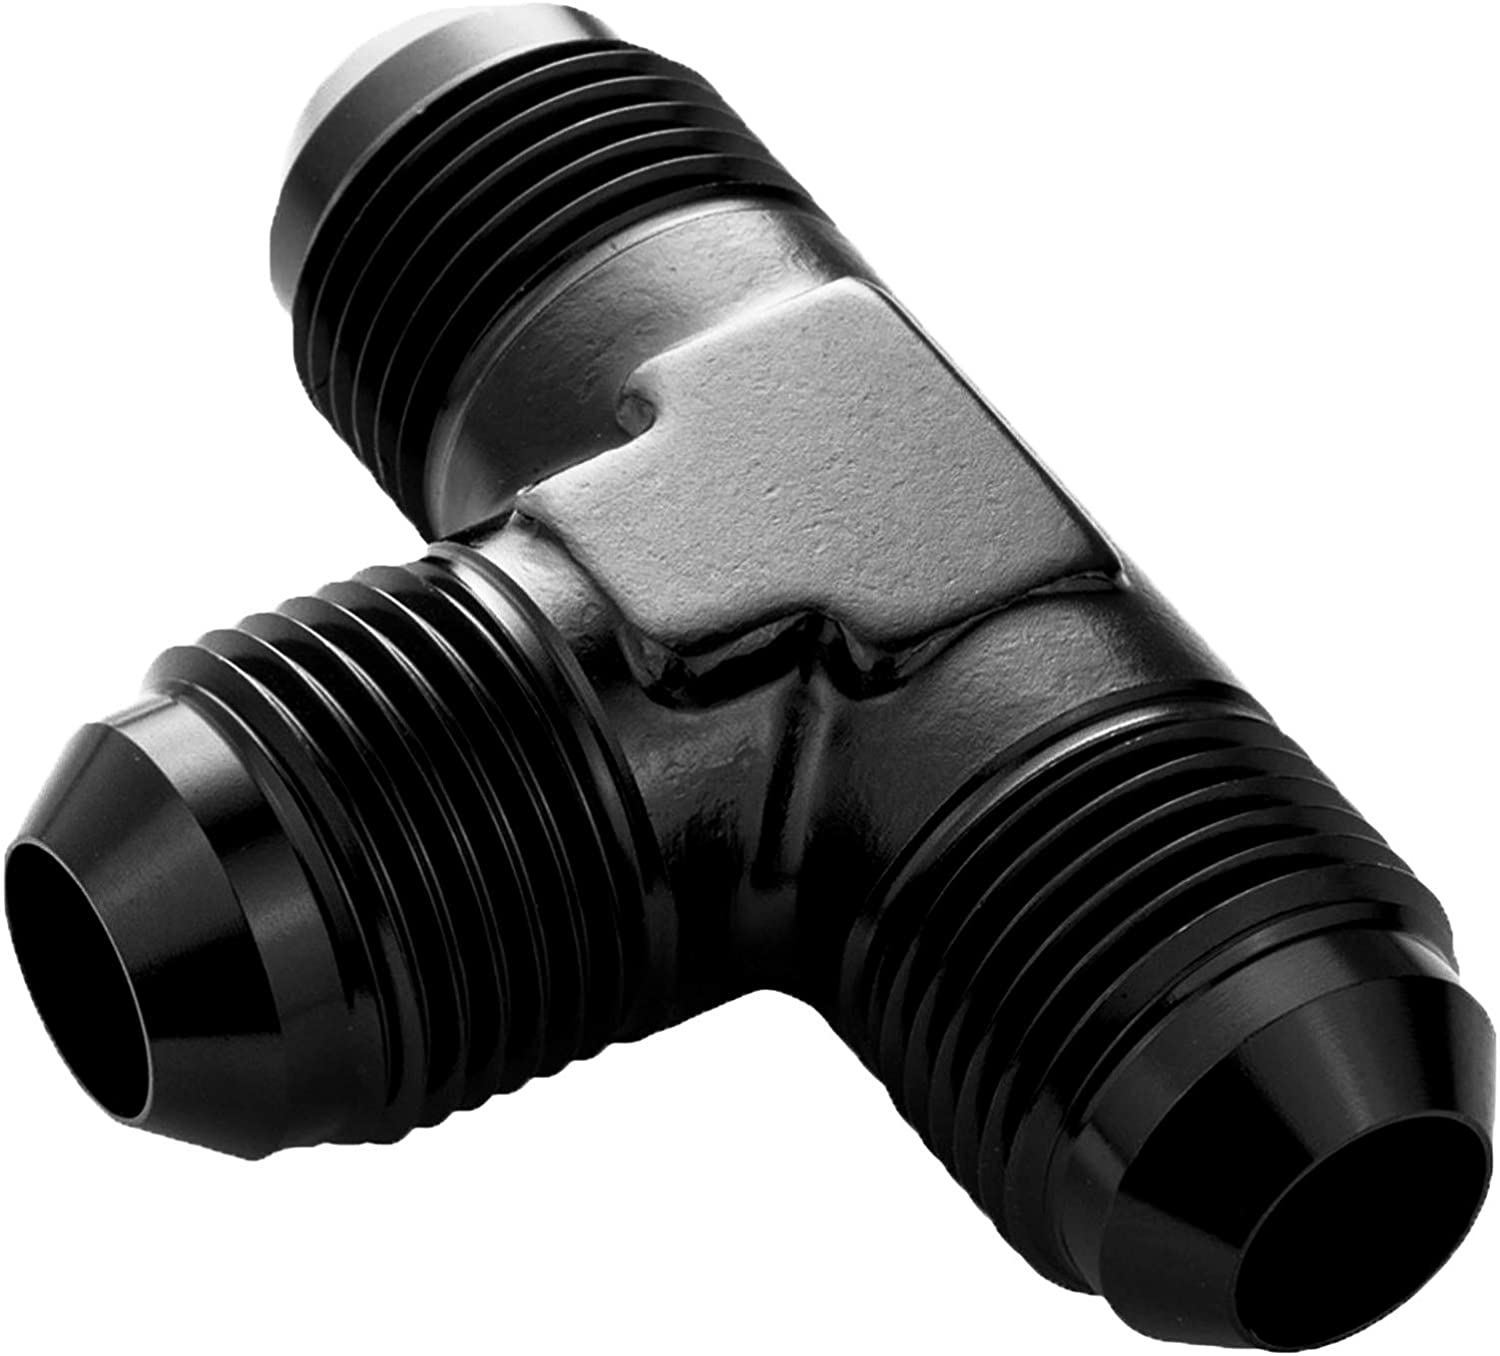 6AN to AN 6 Male Y Block Fuel Pump Fitting Adapter Aluminum 3 x 6AN 9//16-18 Male Flare Thread Y Tube Connector Black